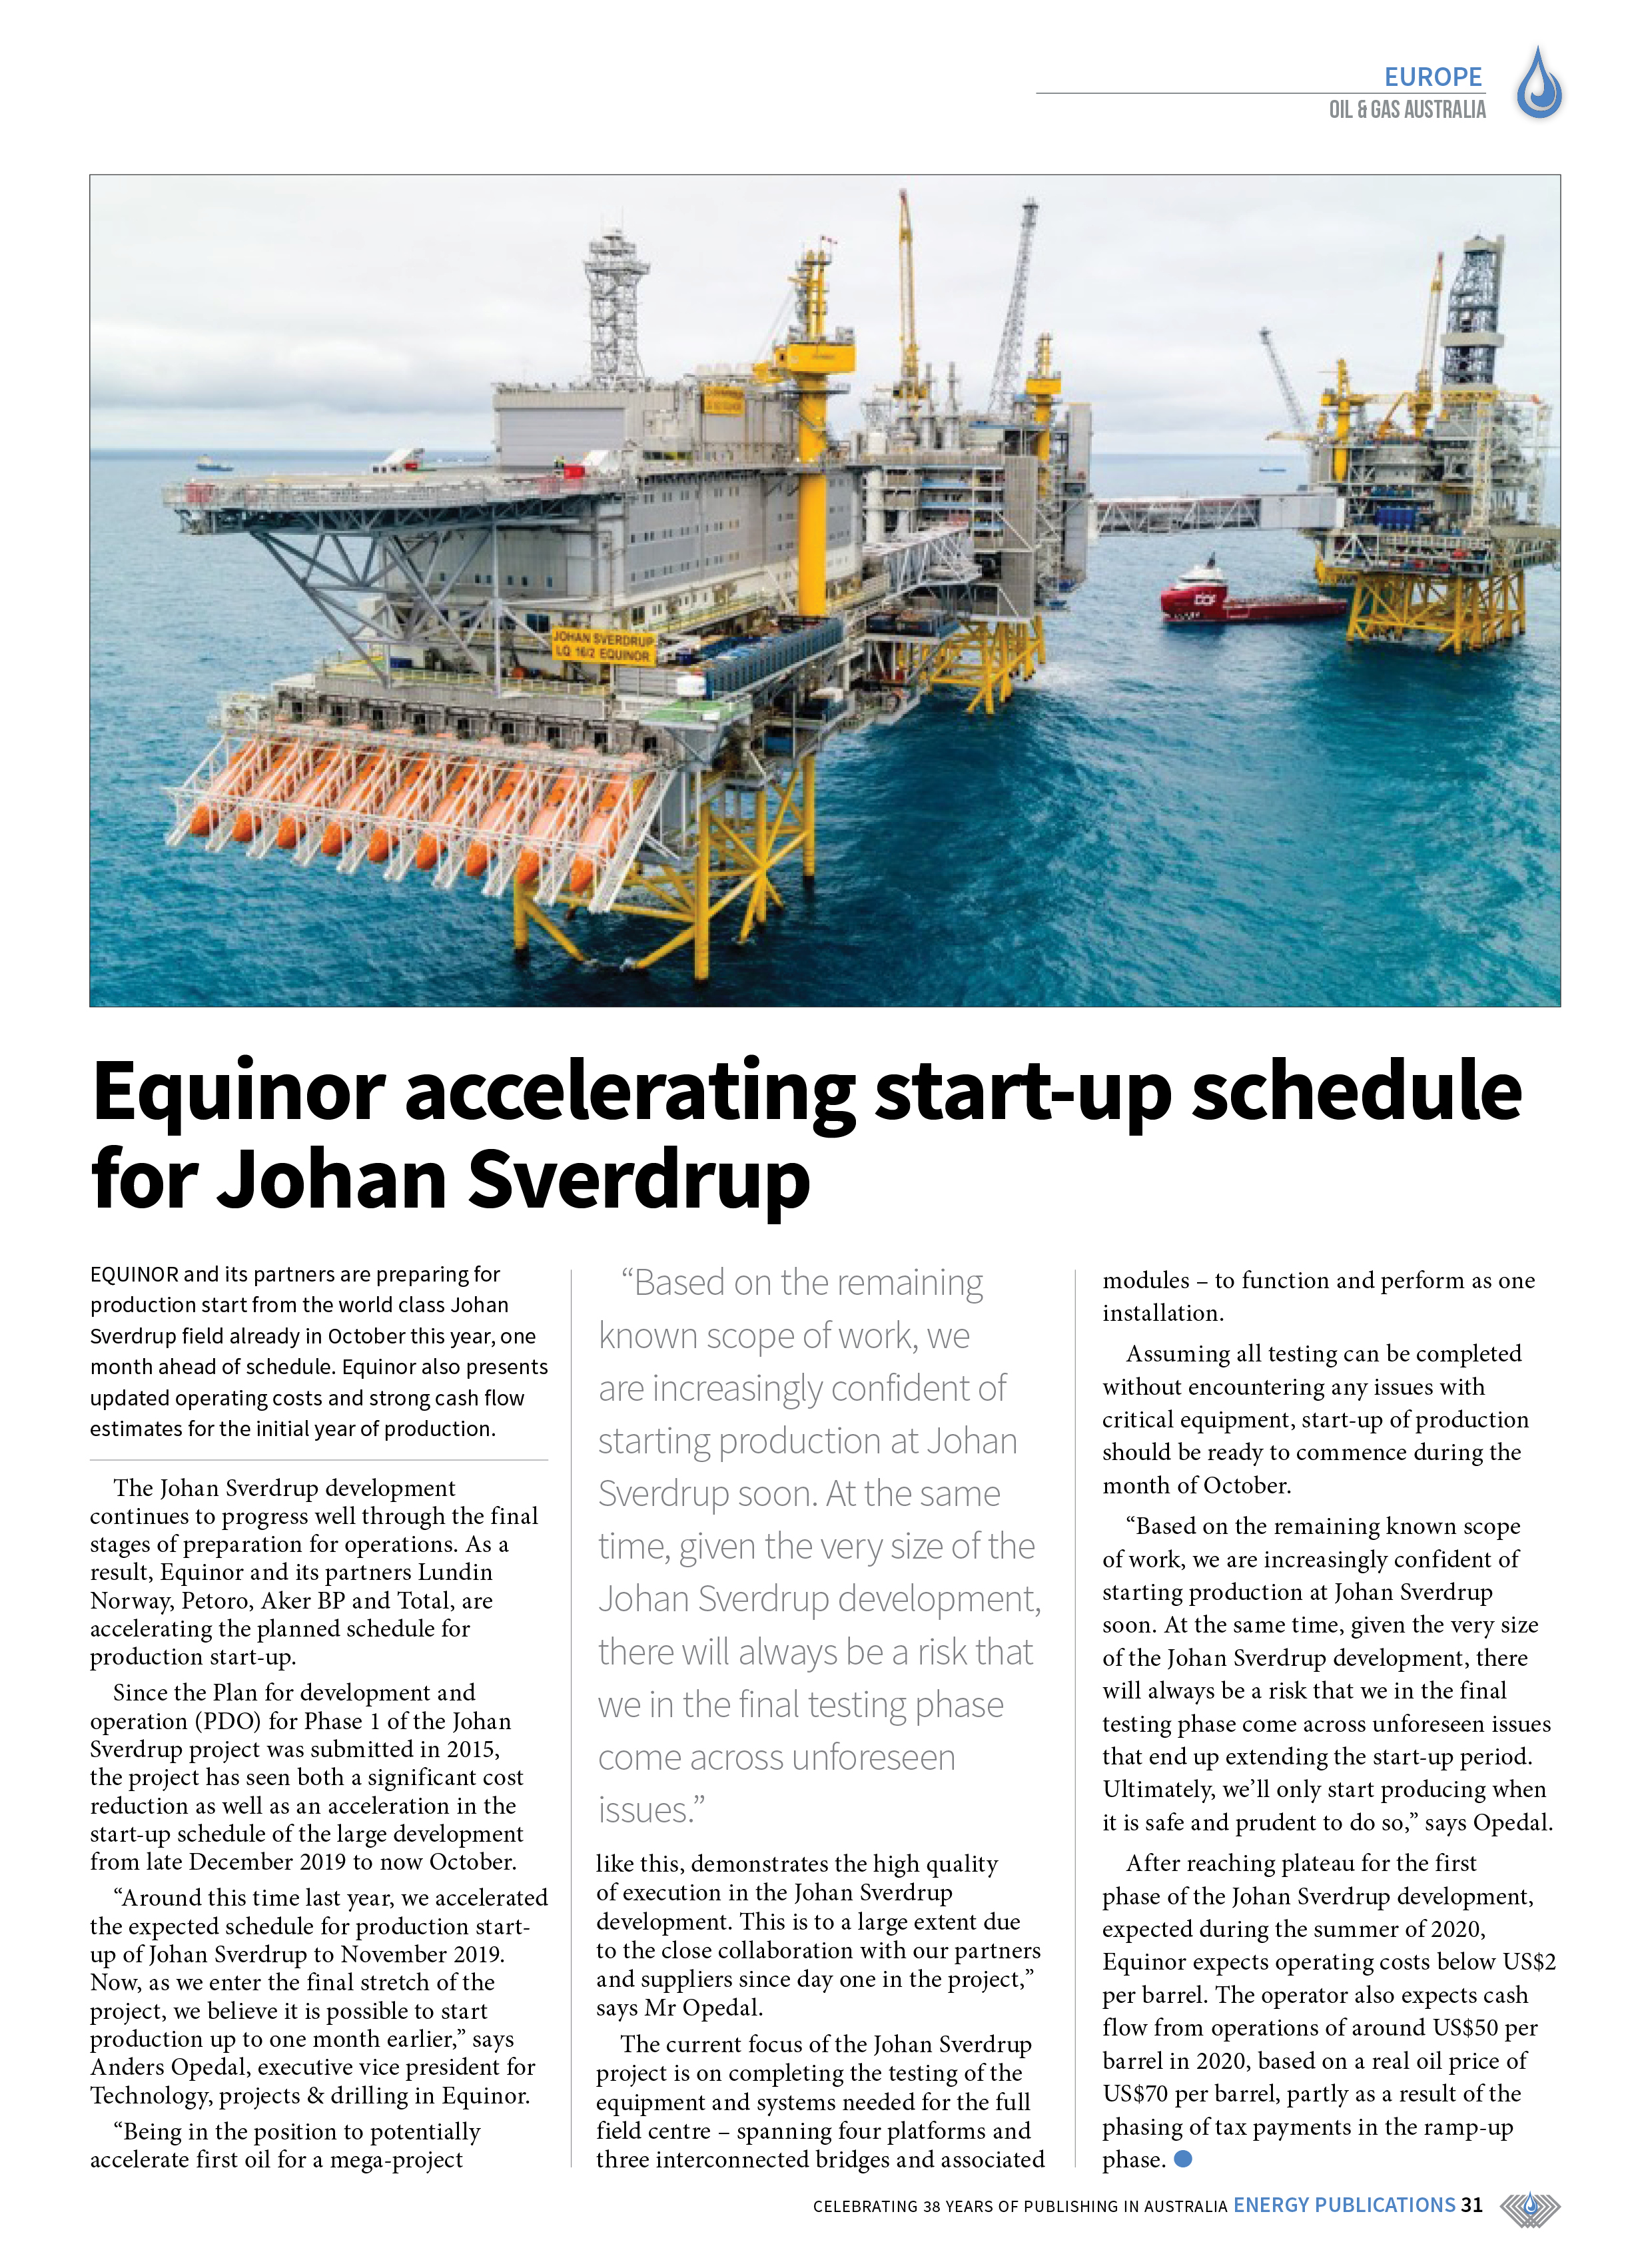 Oil & Gas Australia – October 2019 – Page 33